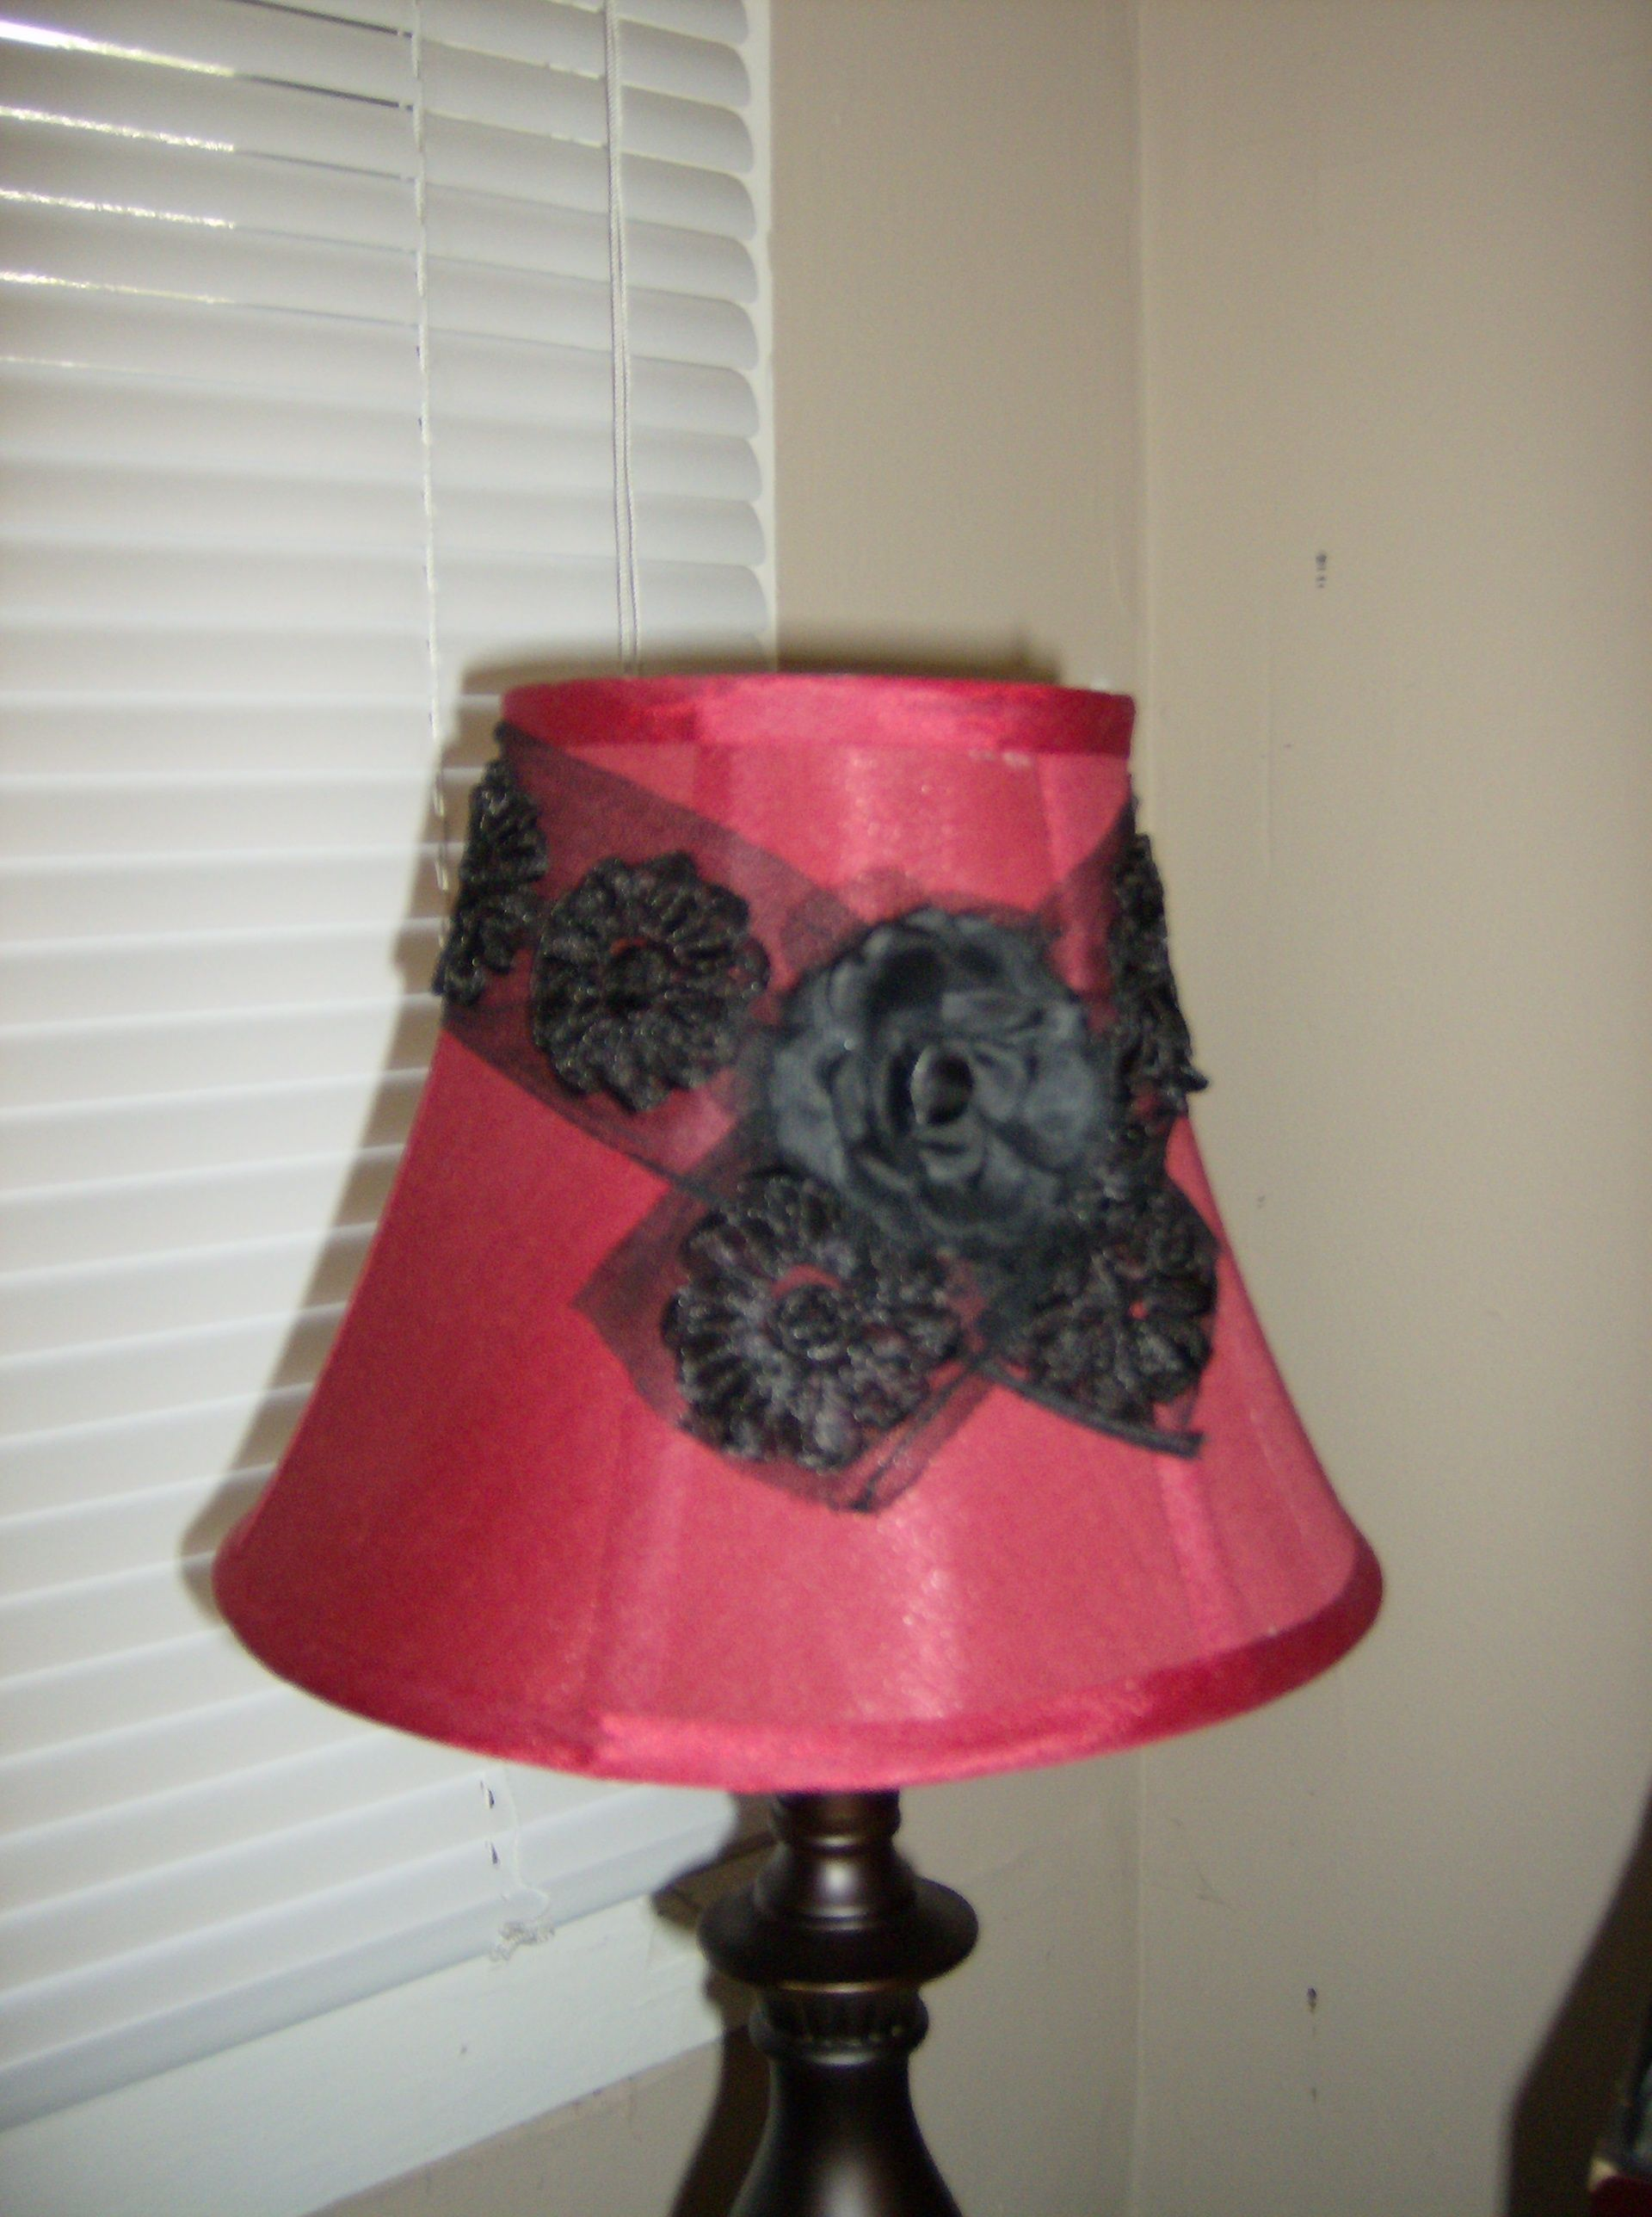 Hobby Lobby Lamp Shades Unique Decorative Lamp Shadehobby Lobby Knockoff Projects Design Inspiration